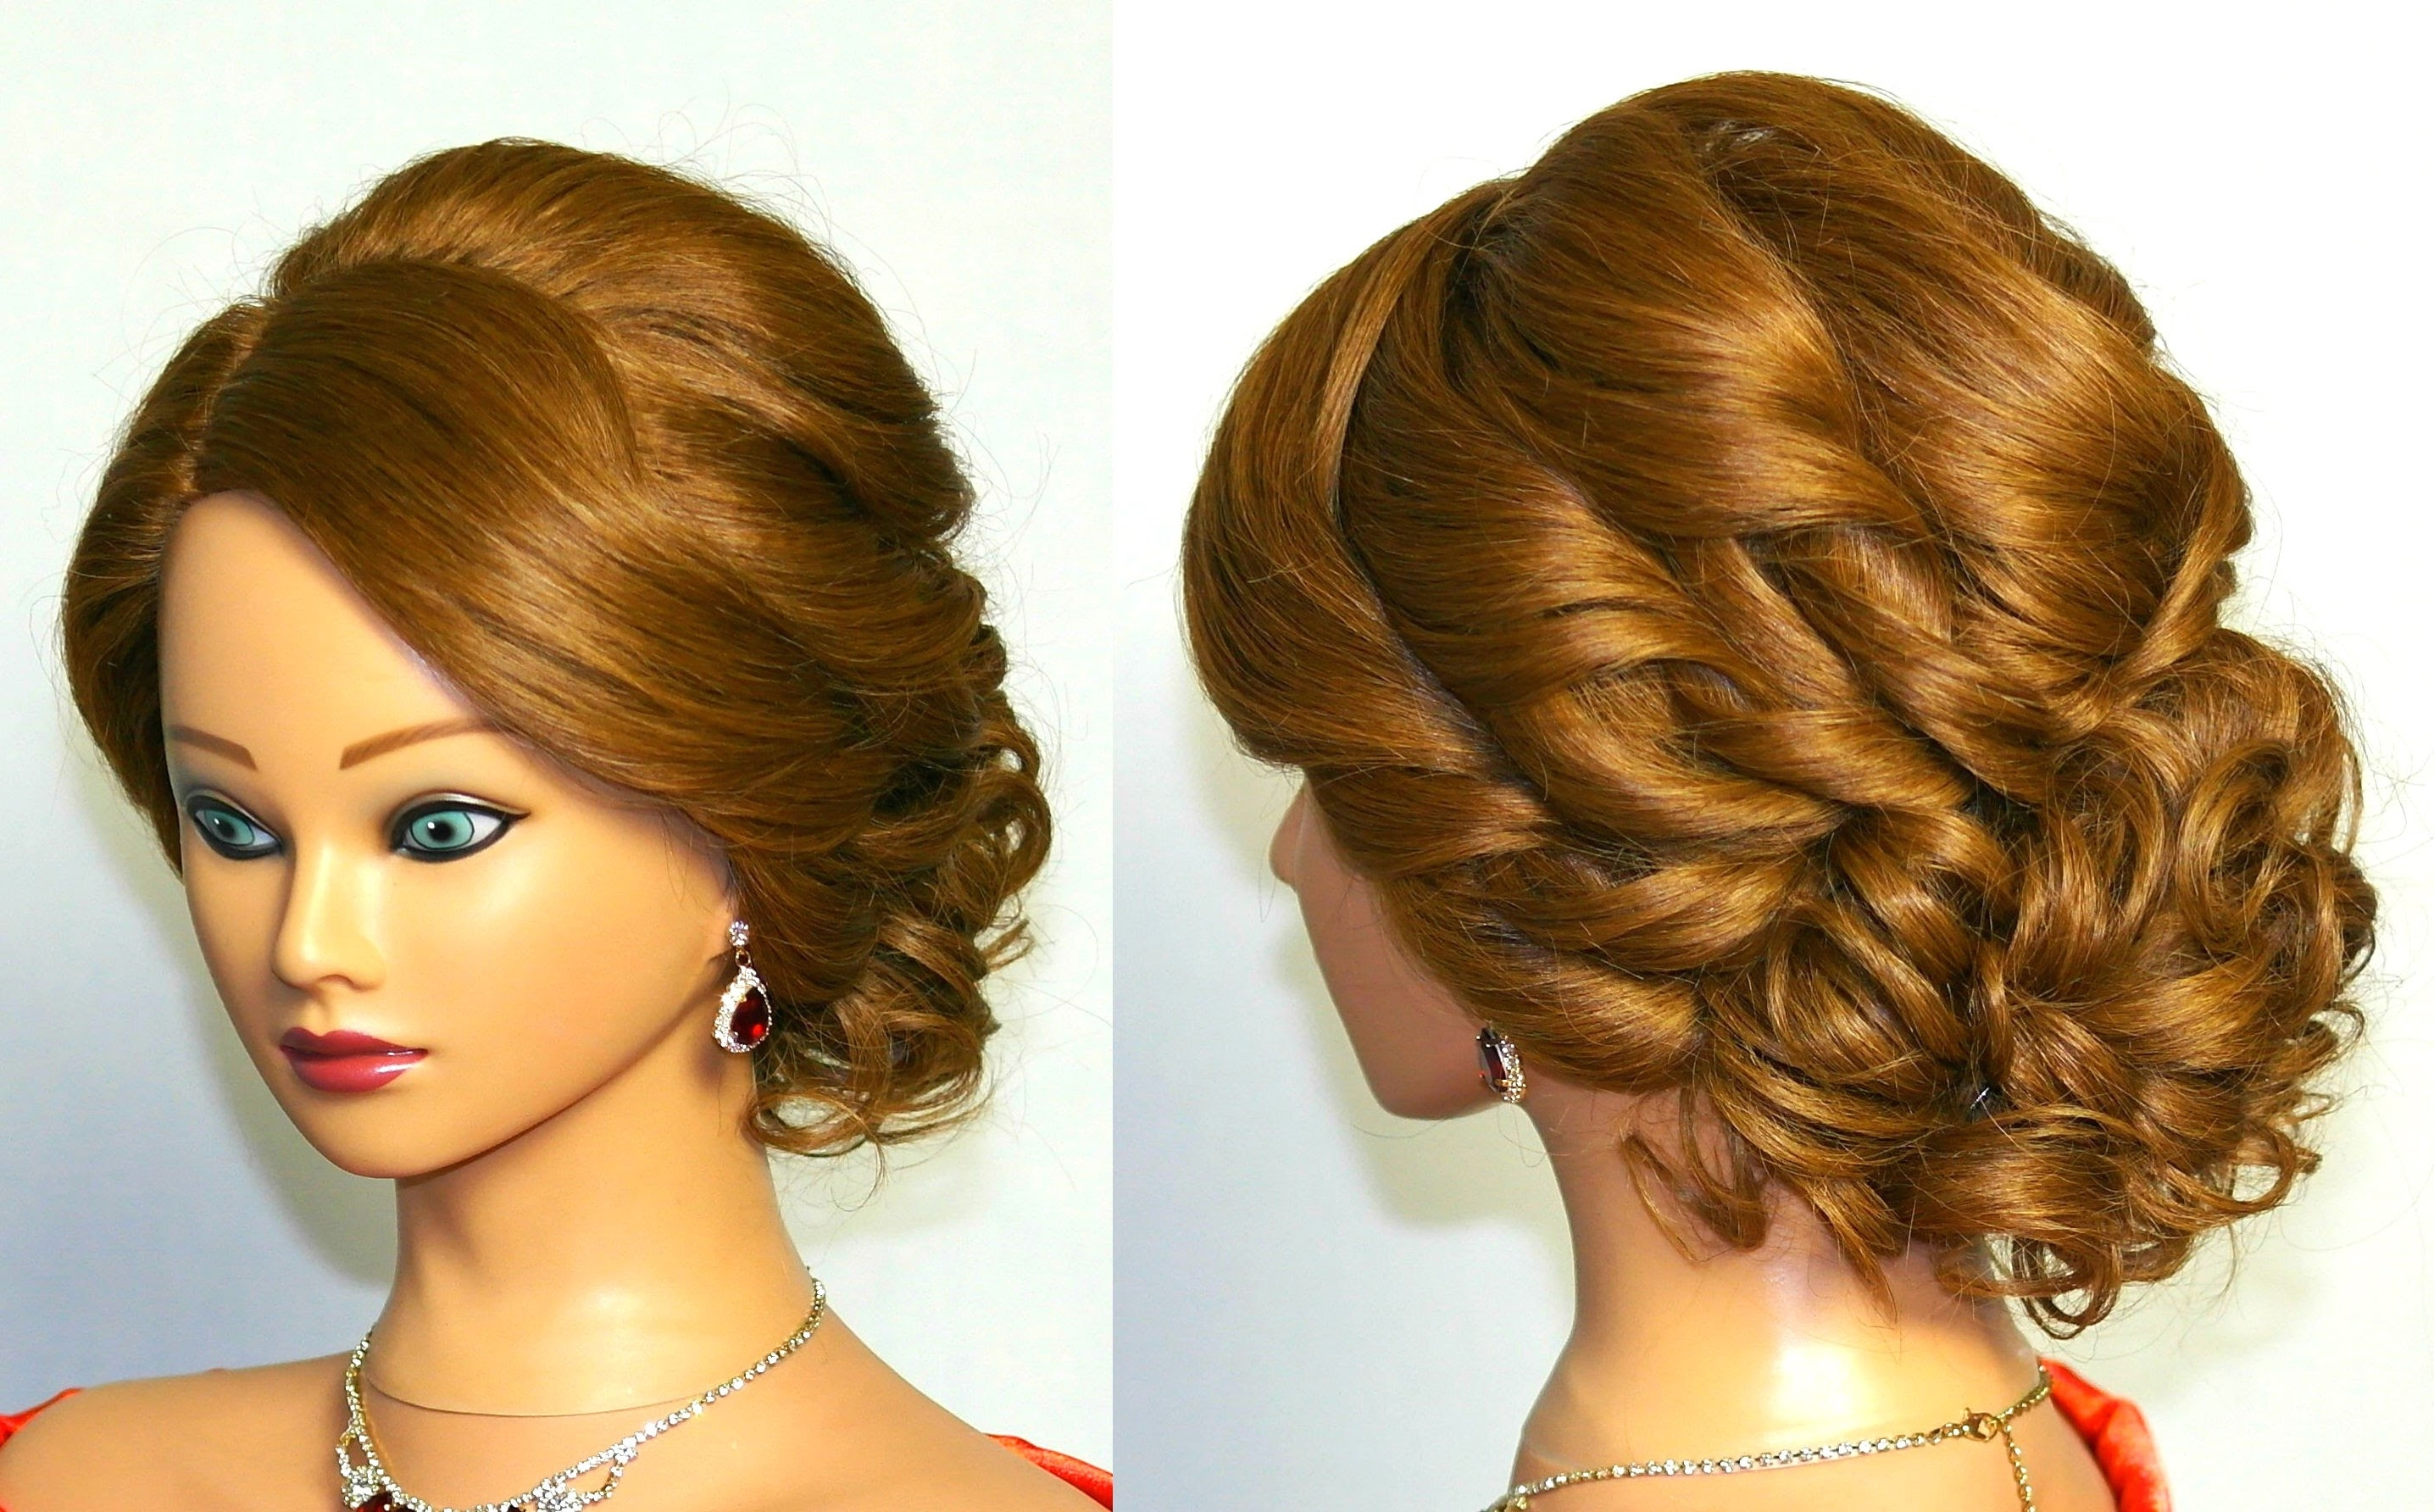 Latest Wedding Updo Hairstyles For Long Curly Hair Pertaining To Bridal Curly Updo. Hairstyle For Medium Hair (View 7 of 15)